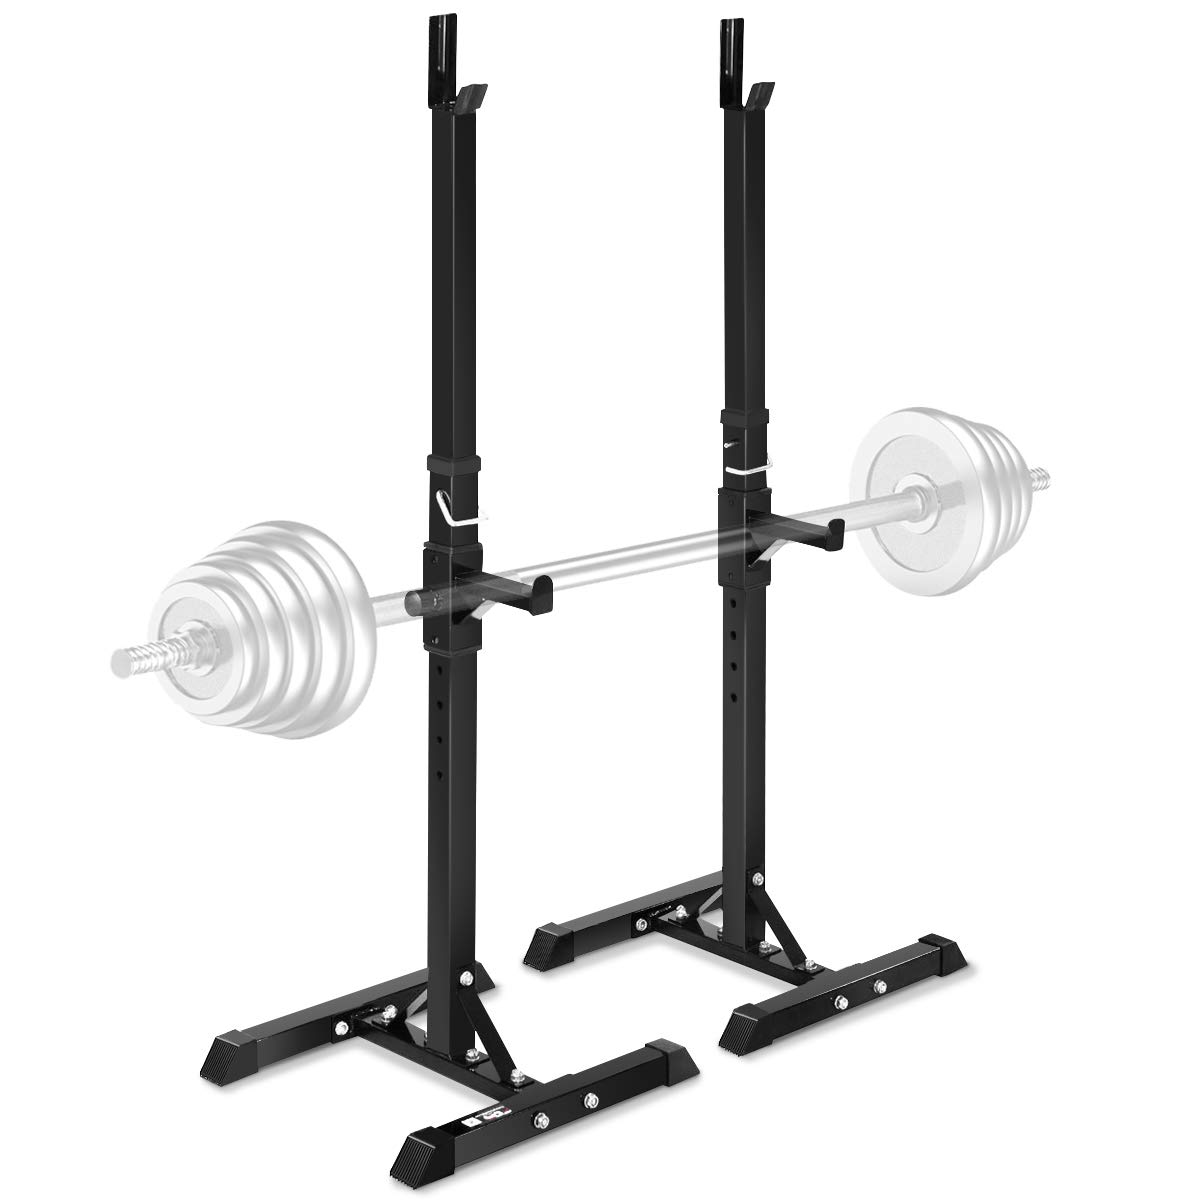 Goplus Pair of Adjustable Standard Squat Stands 42''- 67'' Rack Solid Steel Portable Barbell Dumbbell Power Rack Free Bench Press Stands Home Gym